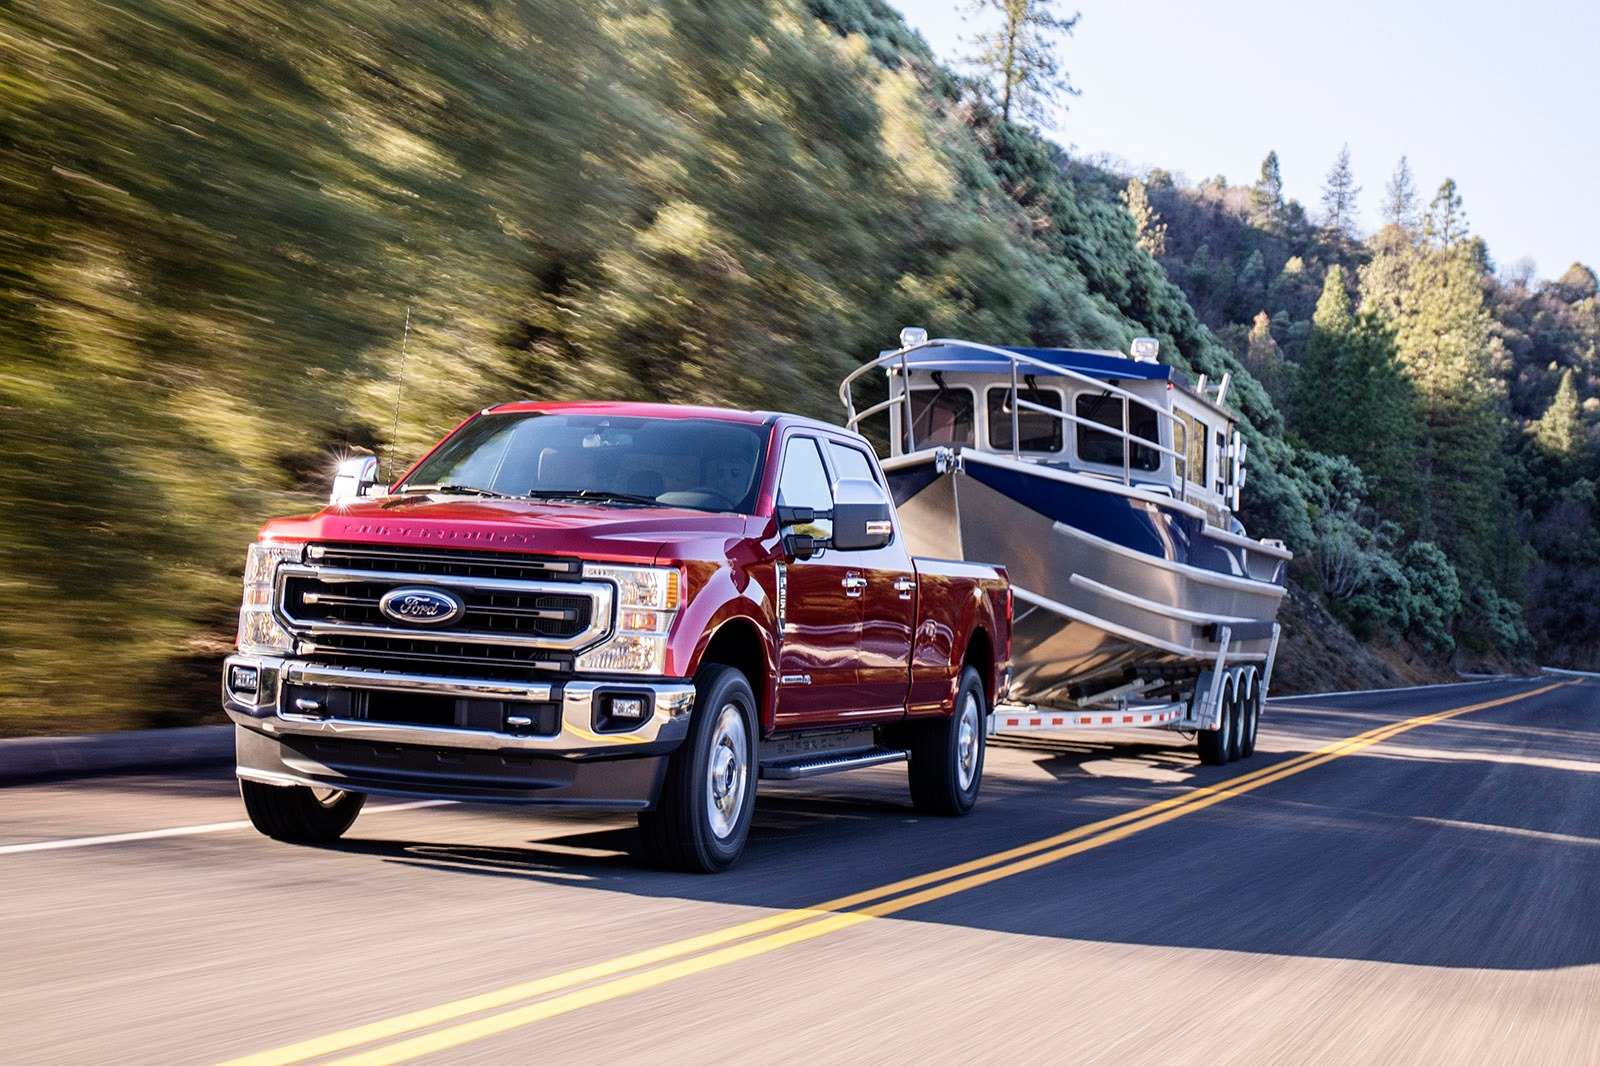 52 Best Review 2020 Ford F 150 Trucks Specs and Review by 2020 Ford F 150 Trucks